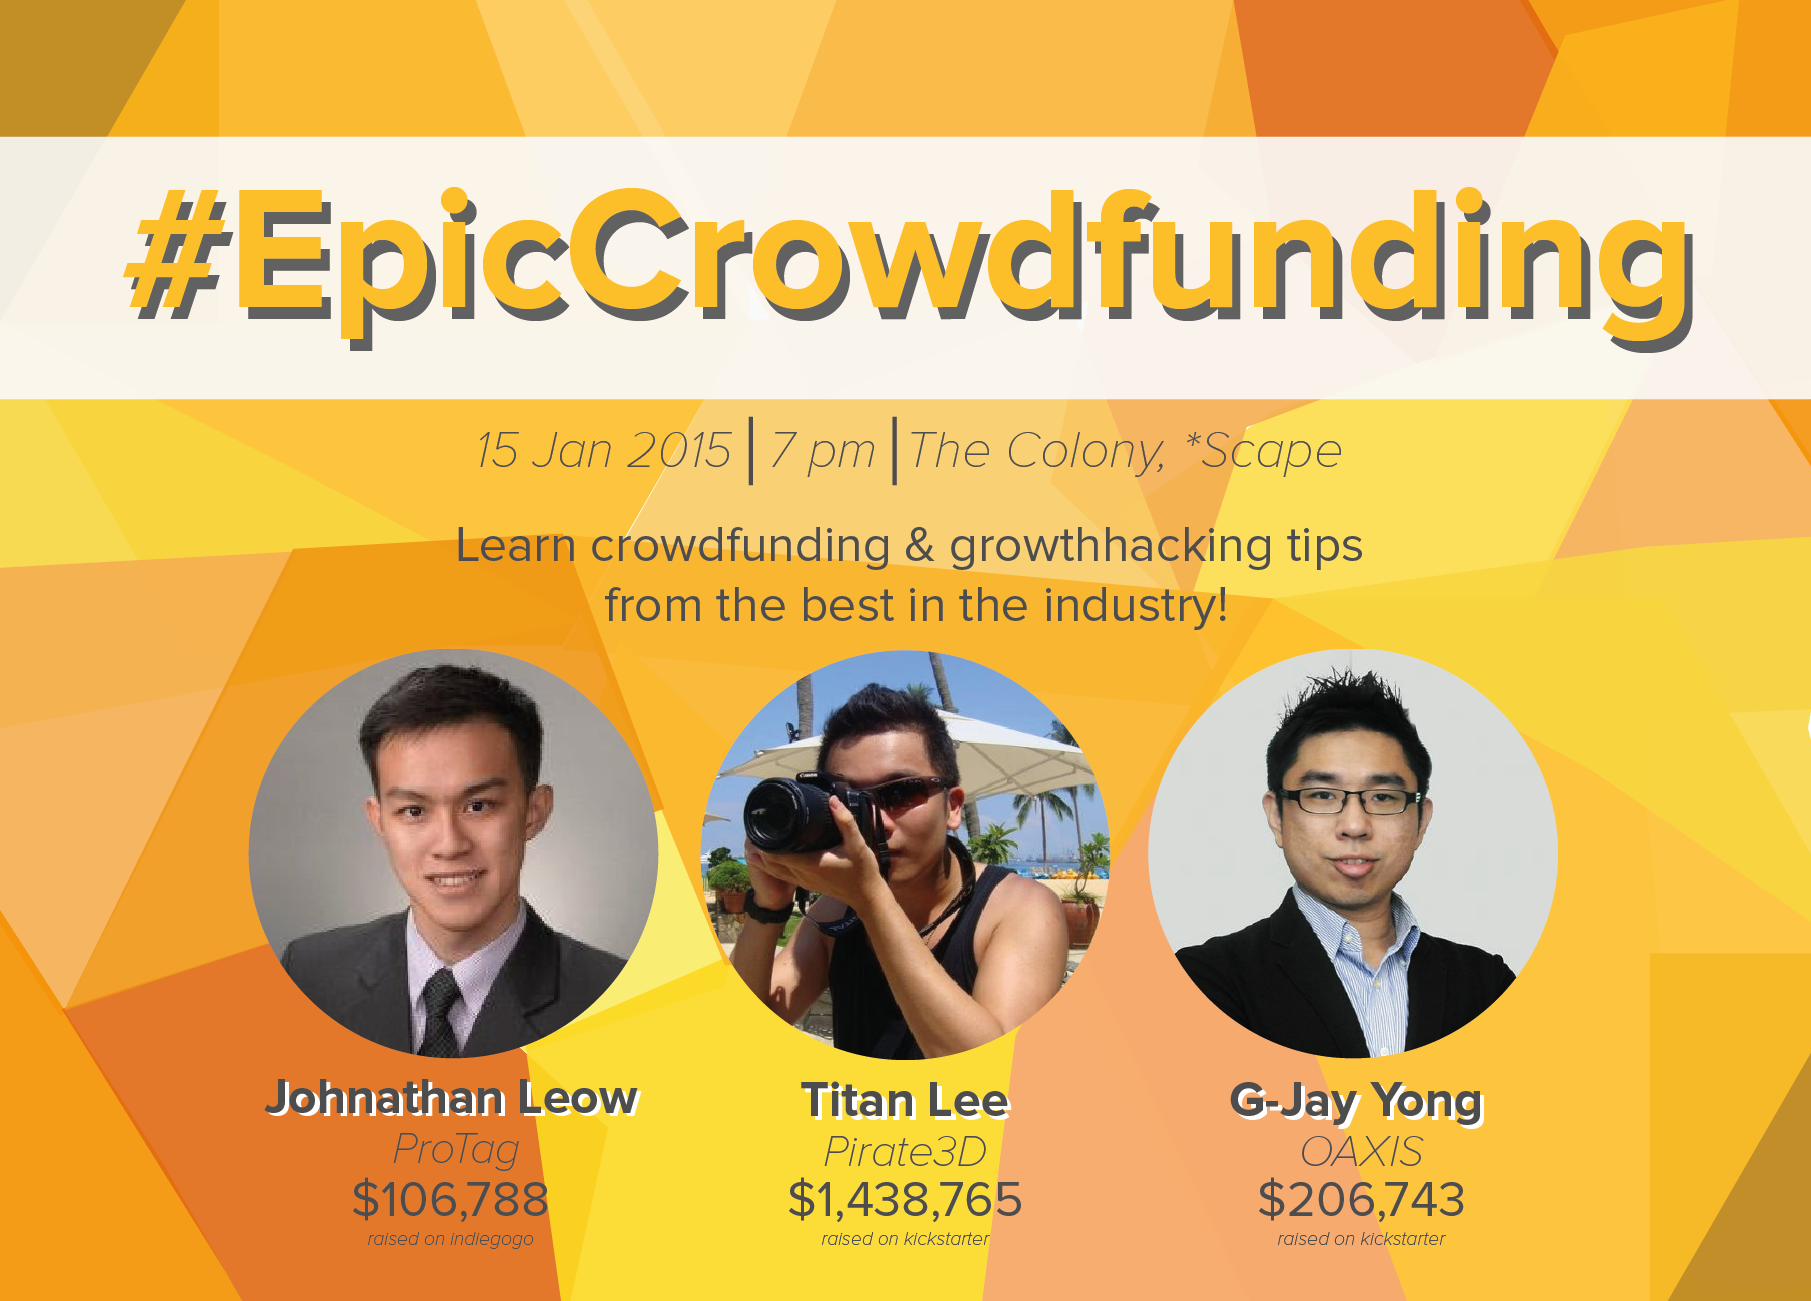 #EpicCrowdfunding – How to launch your campaign